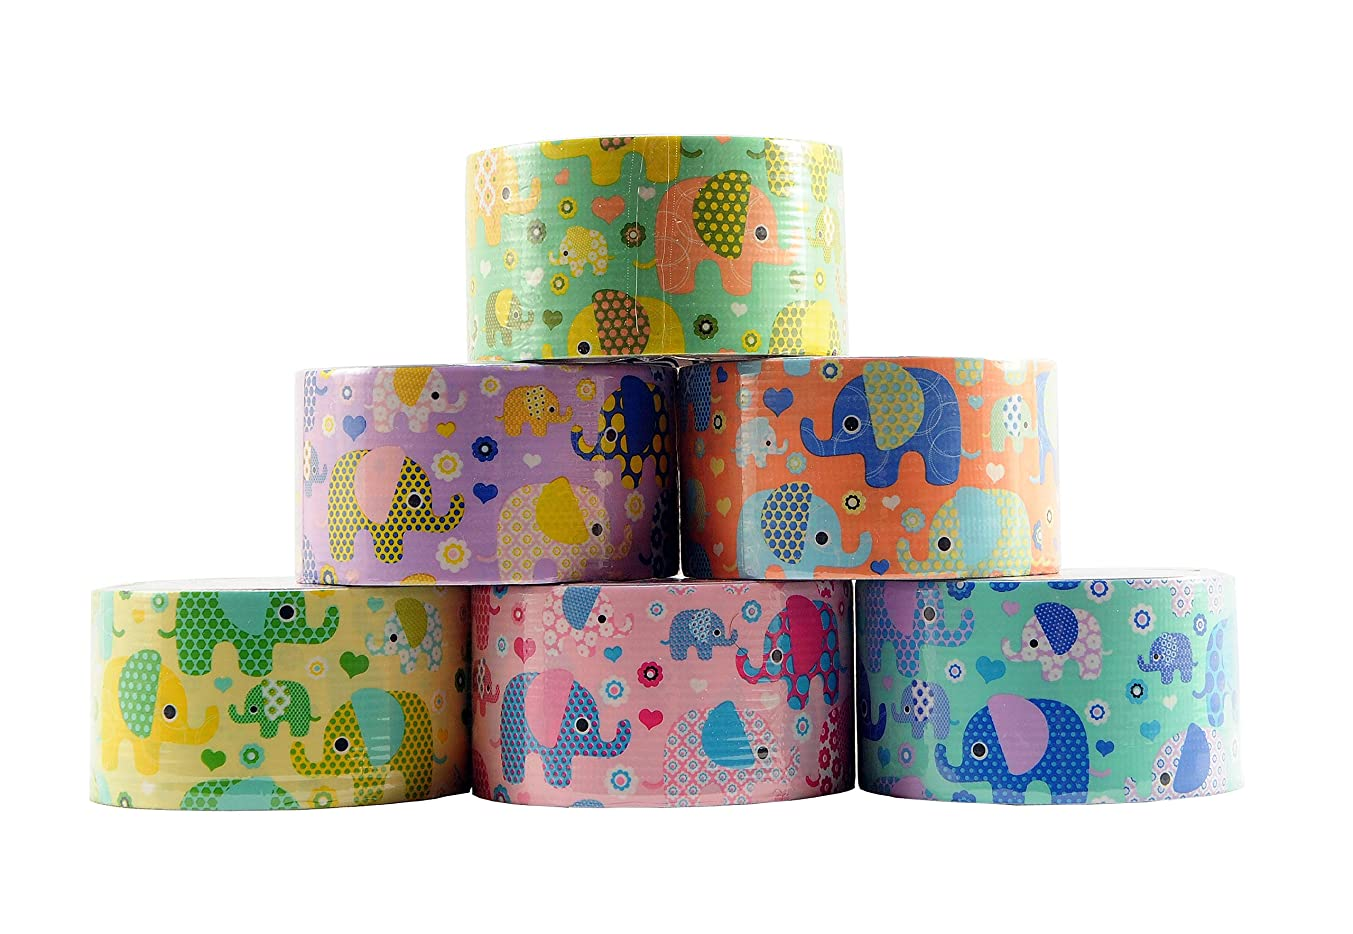 6 Roll Variety Pack of Decorative Duct Style Tape, Elephant Tape, Each Roll 1.88 Inch x 5 Yards, Ideal for Scrapbooking - Decorating - Signage (6-Pack, Elephants)